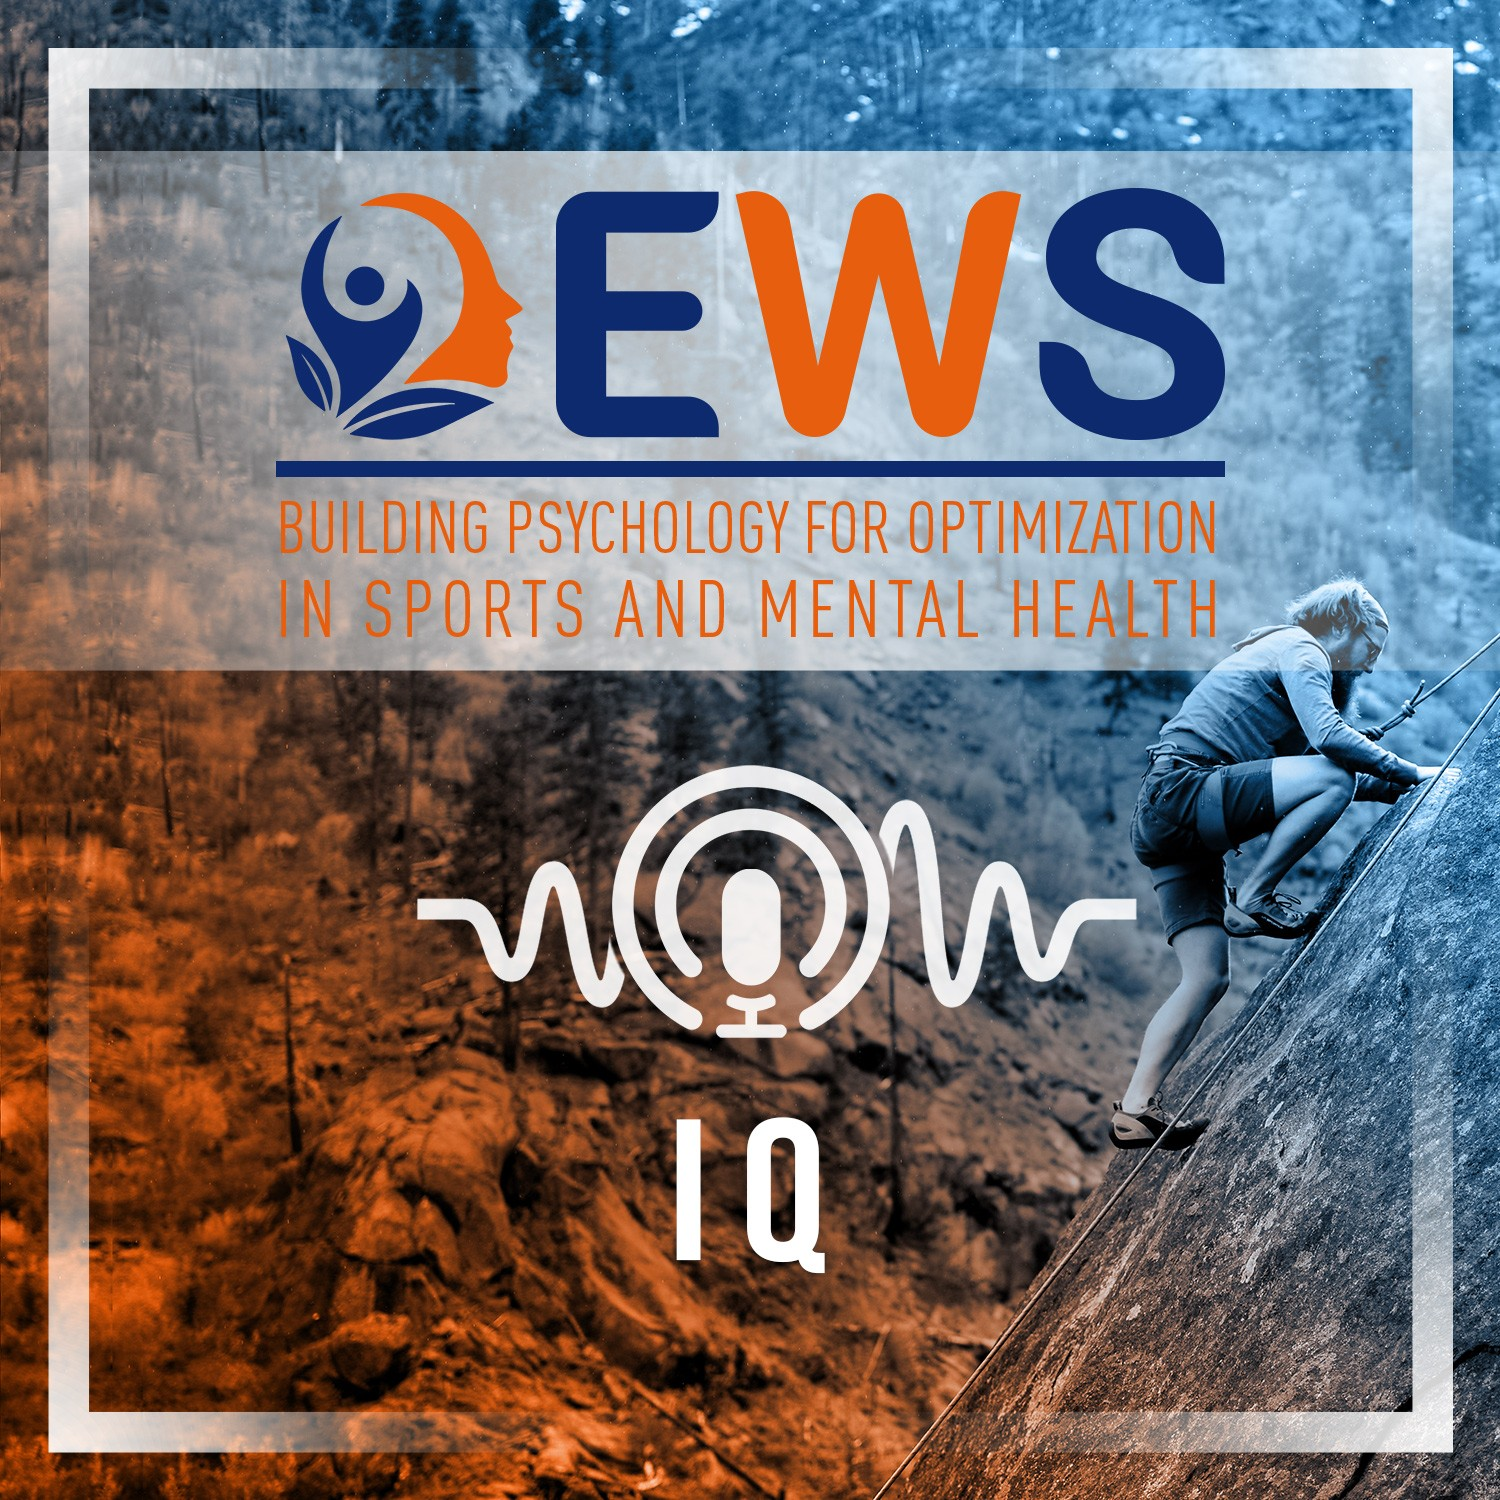 30. The Works for Work-ability - Explaining E-W-S choice, from Marques, G. - IQ #7